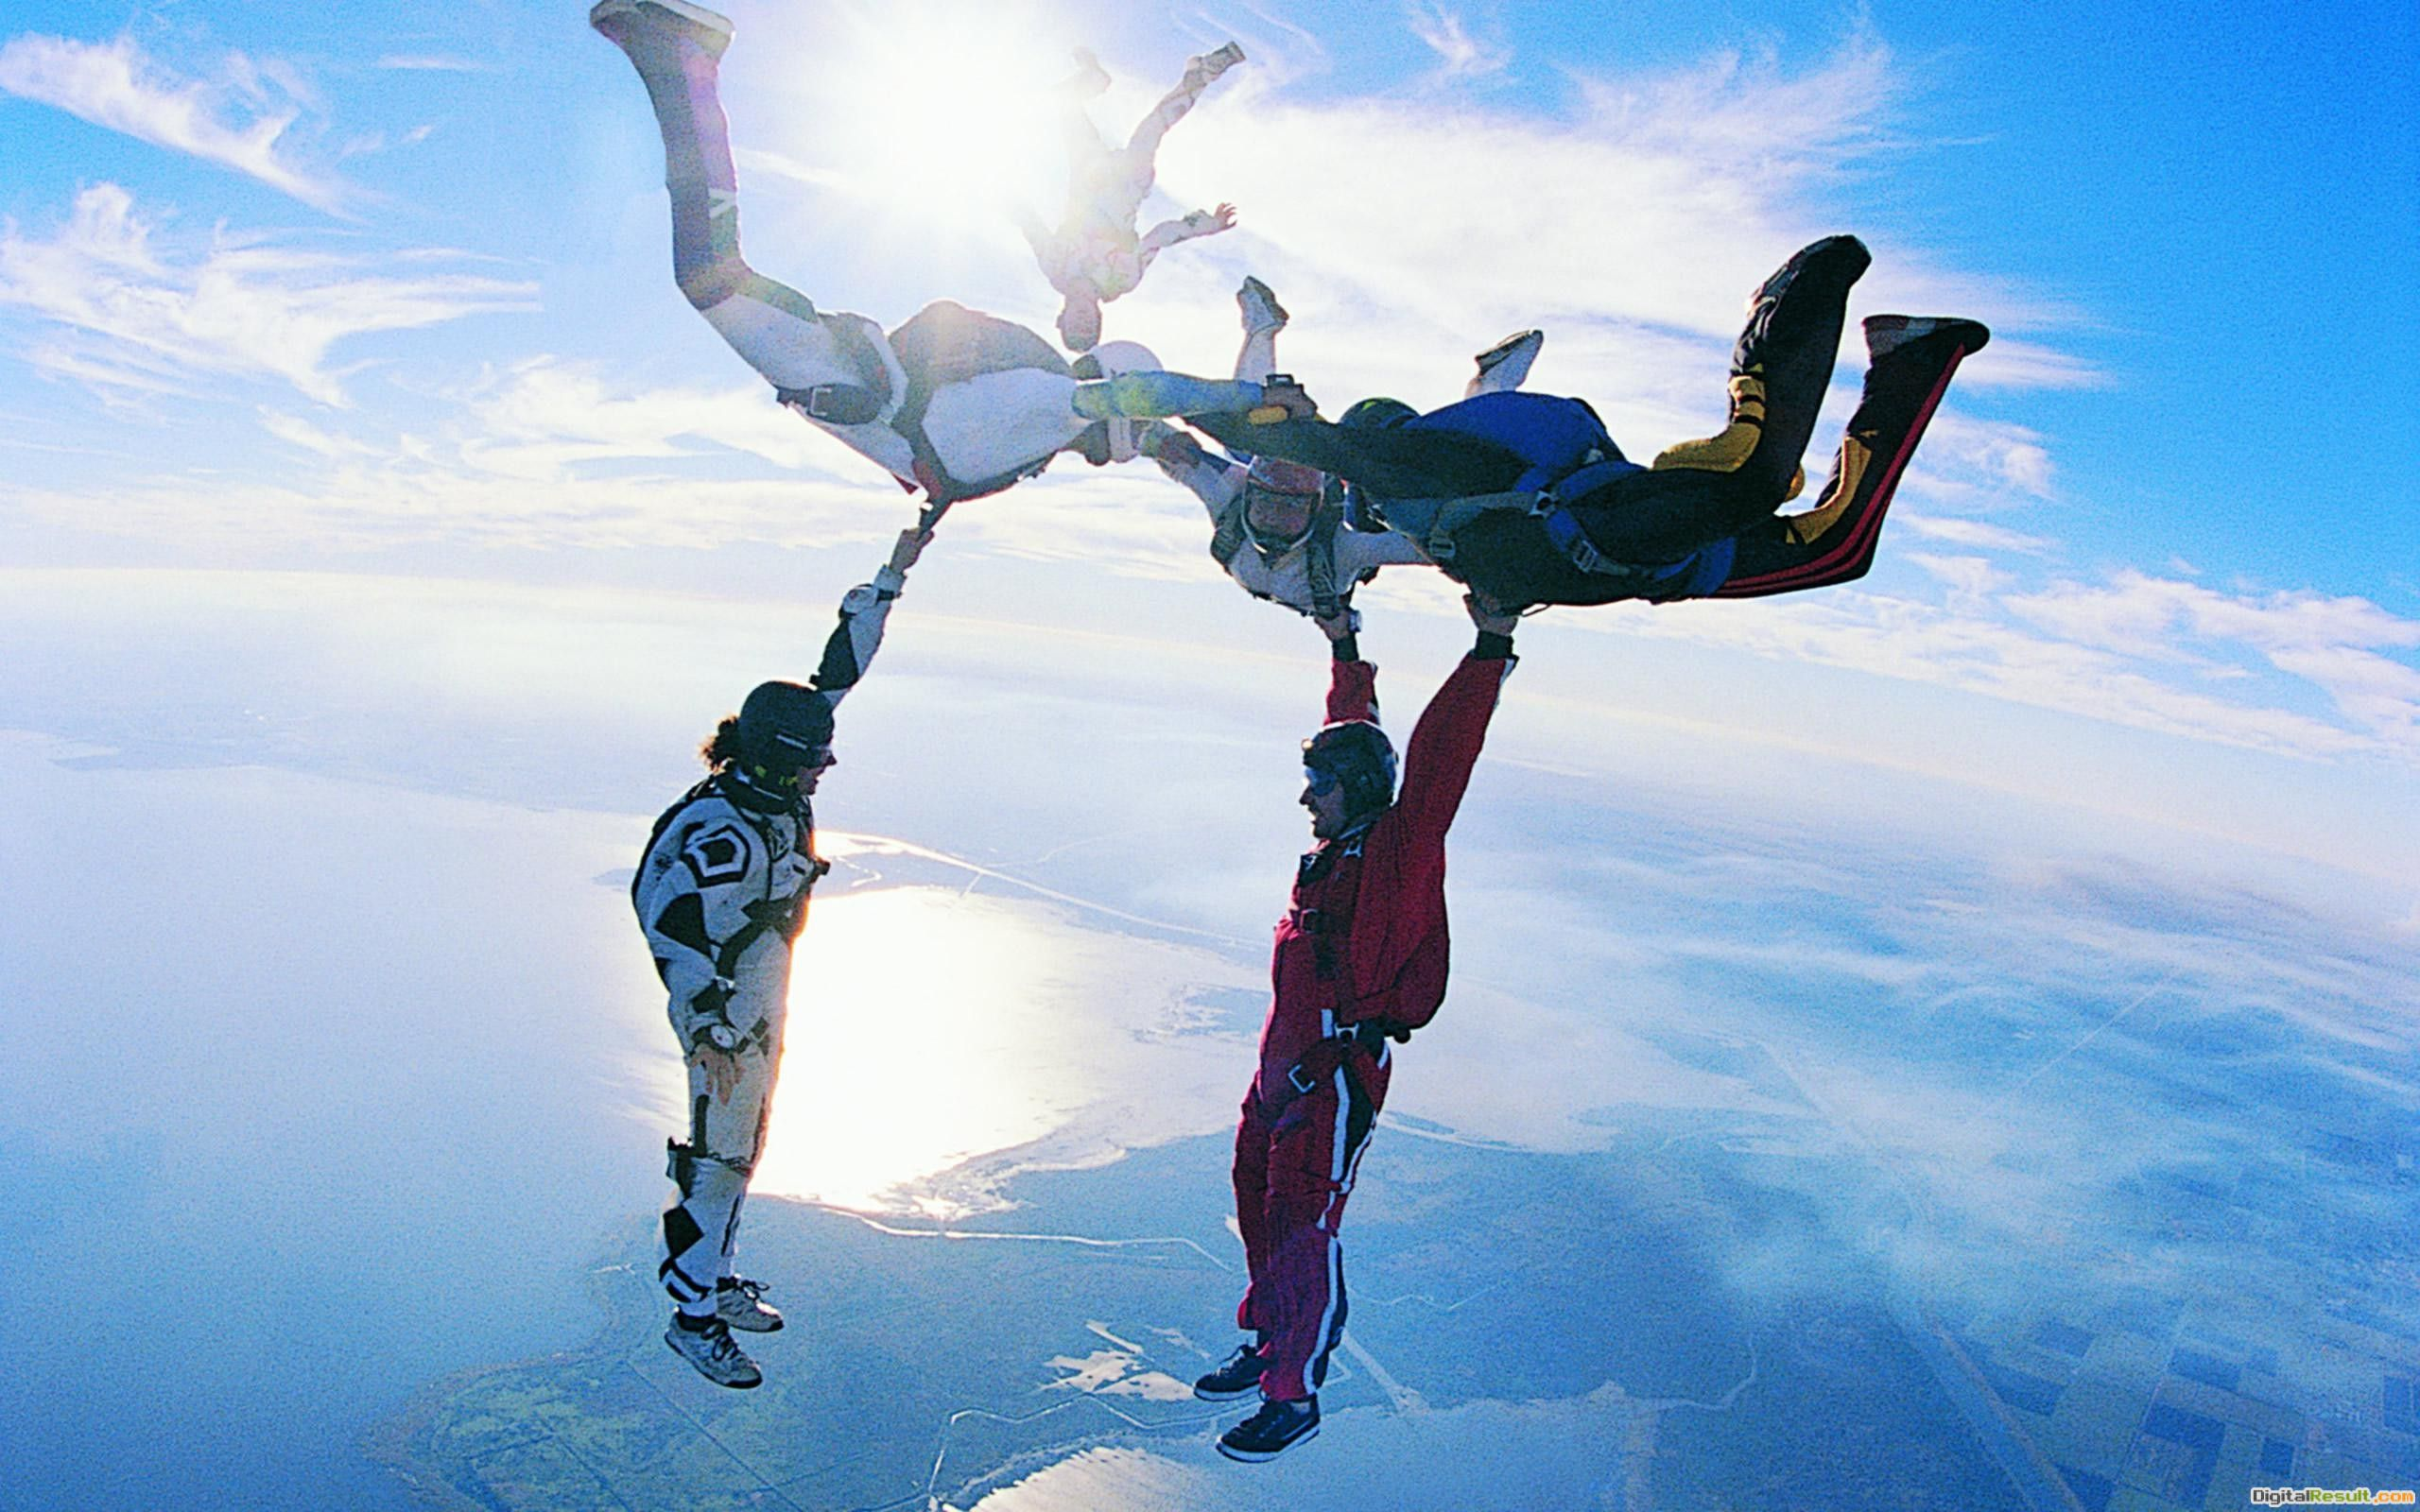 Skydiving Sky Diving Tube Wallpaper, HQ Backgrounds | HD wallpapers 1673